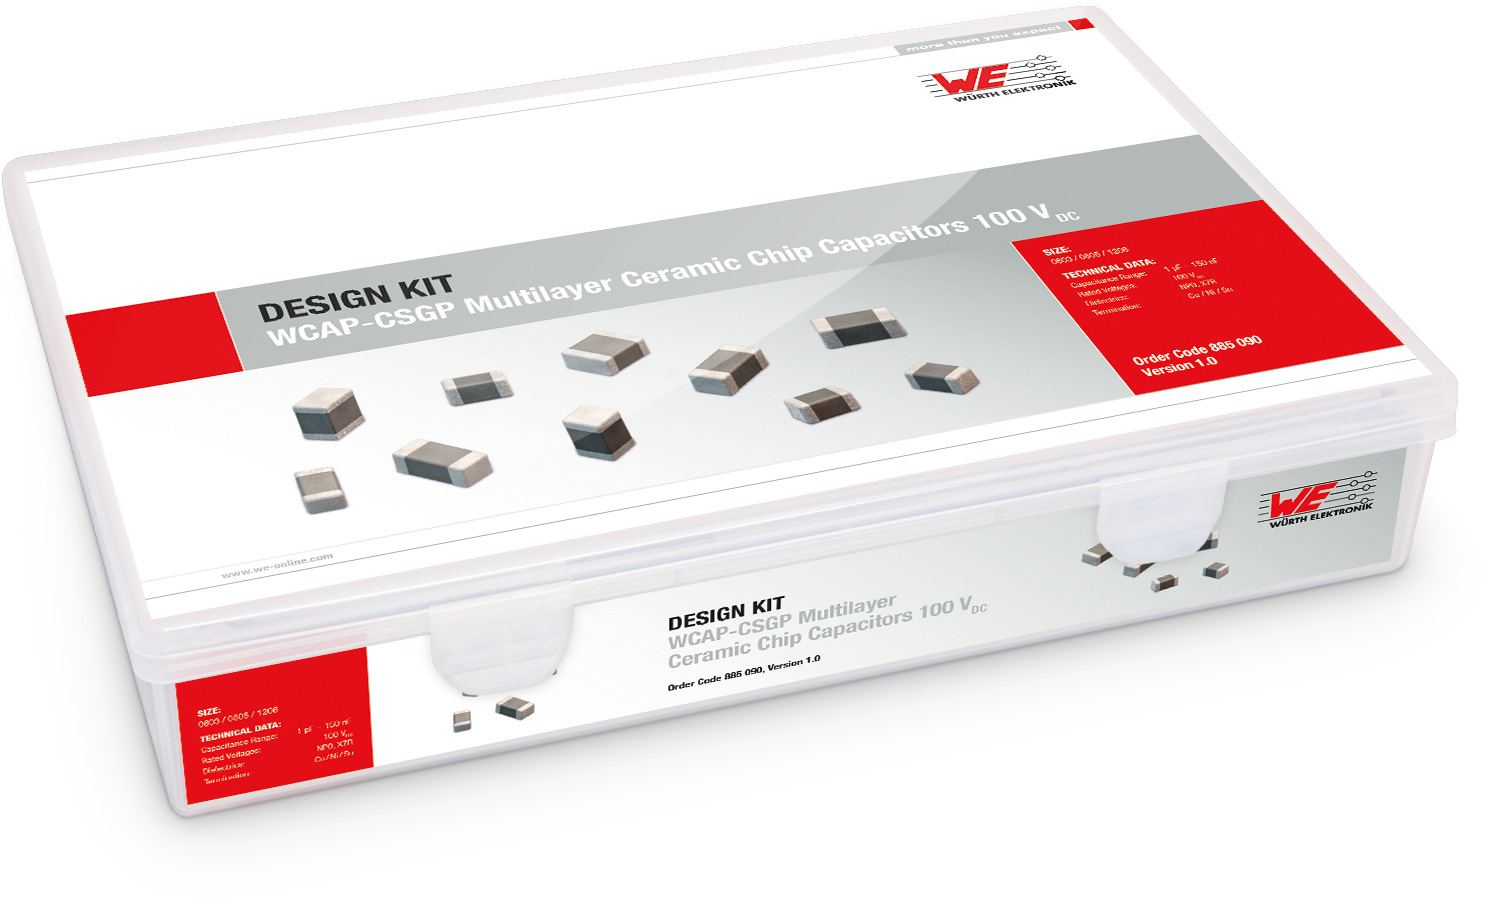 Design Kit WCAP-CSGP Multi-Layer Ceramic Chip Capacitors 100 V Picture